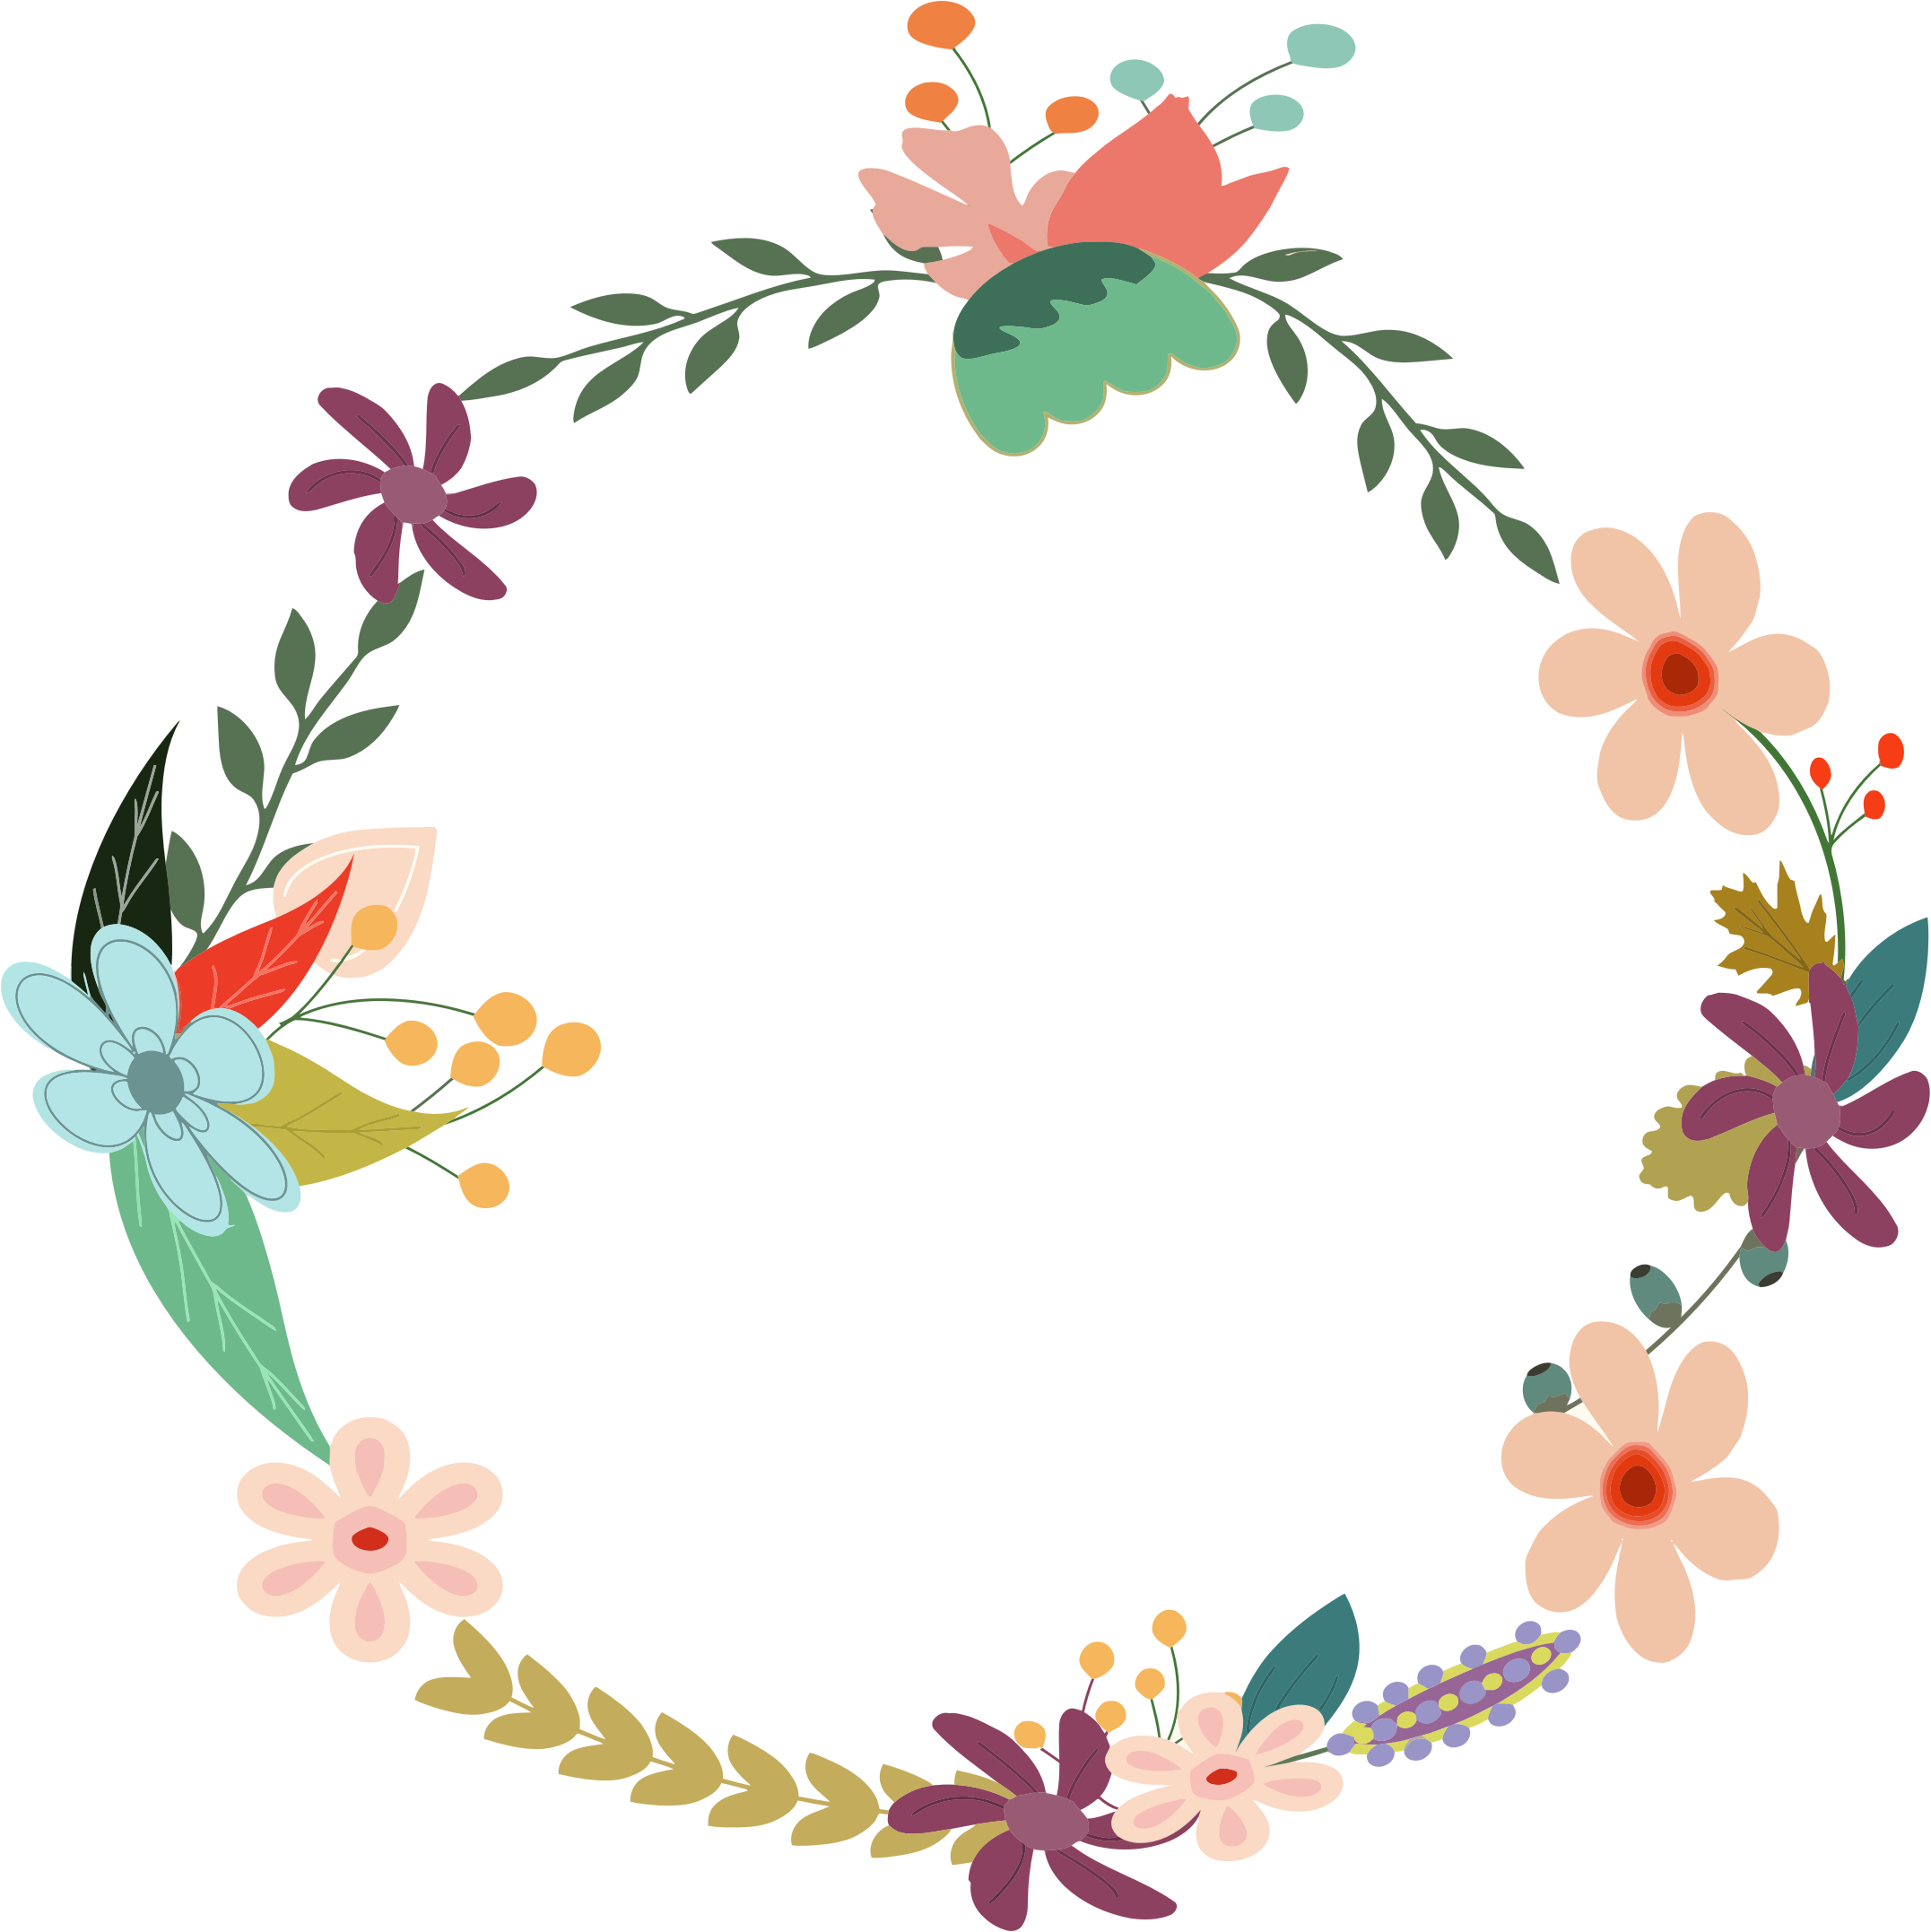 Floral clipart transparent background Transparent wreath Floral Clip Free